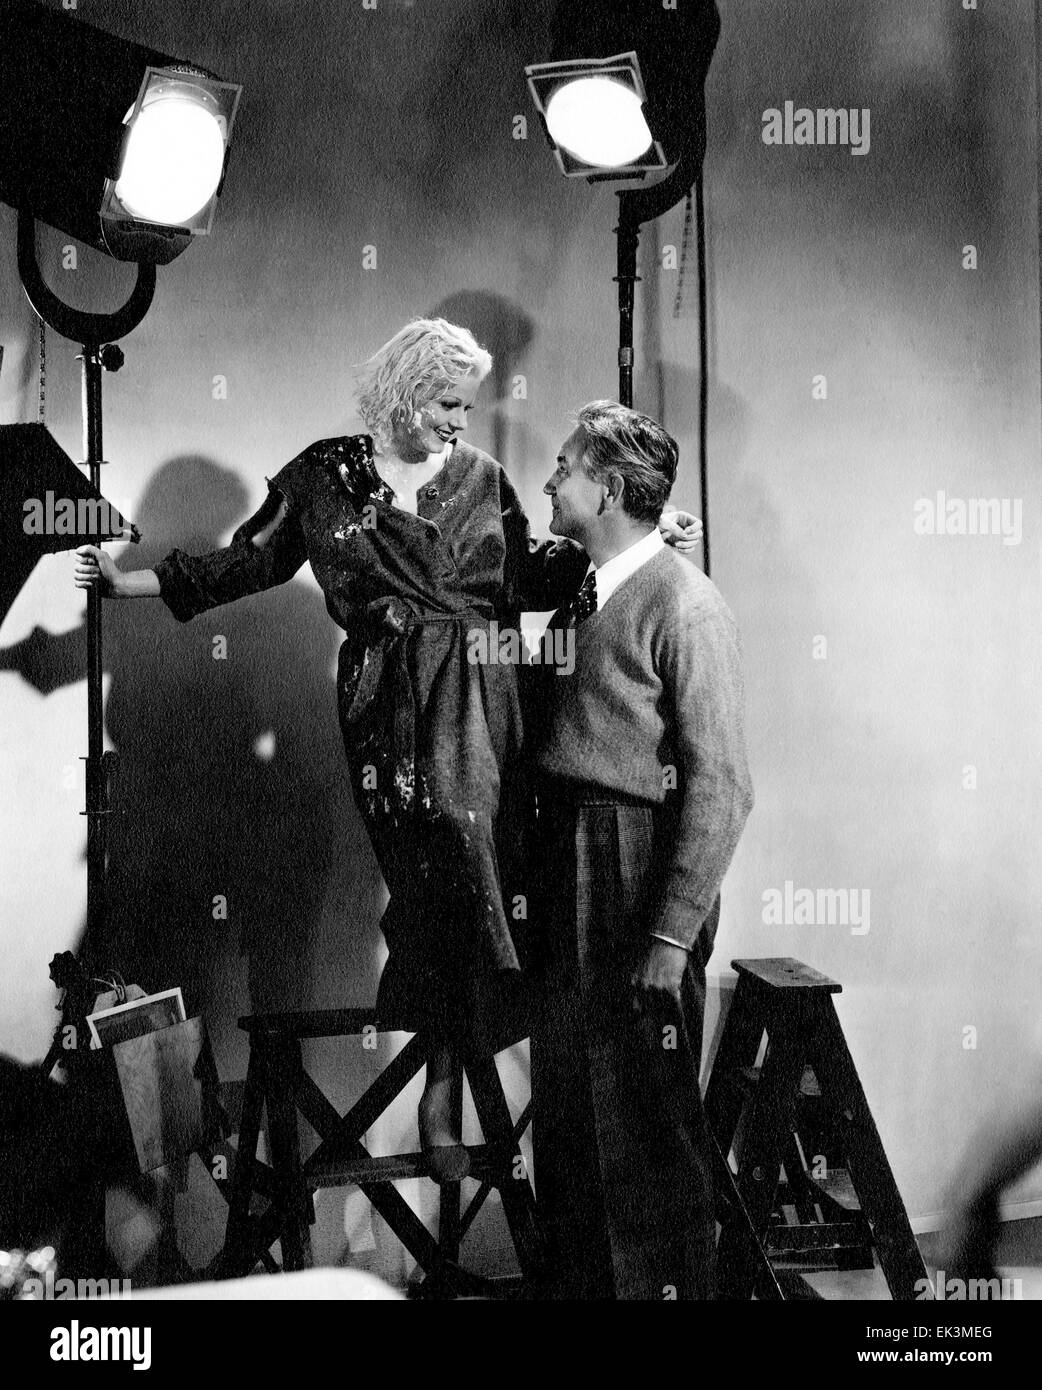 Jean Harlow, Director Victor Fleming, on-set After Scene Cut From Film 'Reckless', 1935 - Stock Image